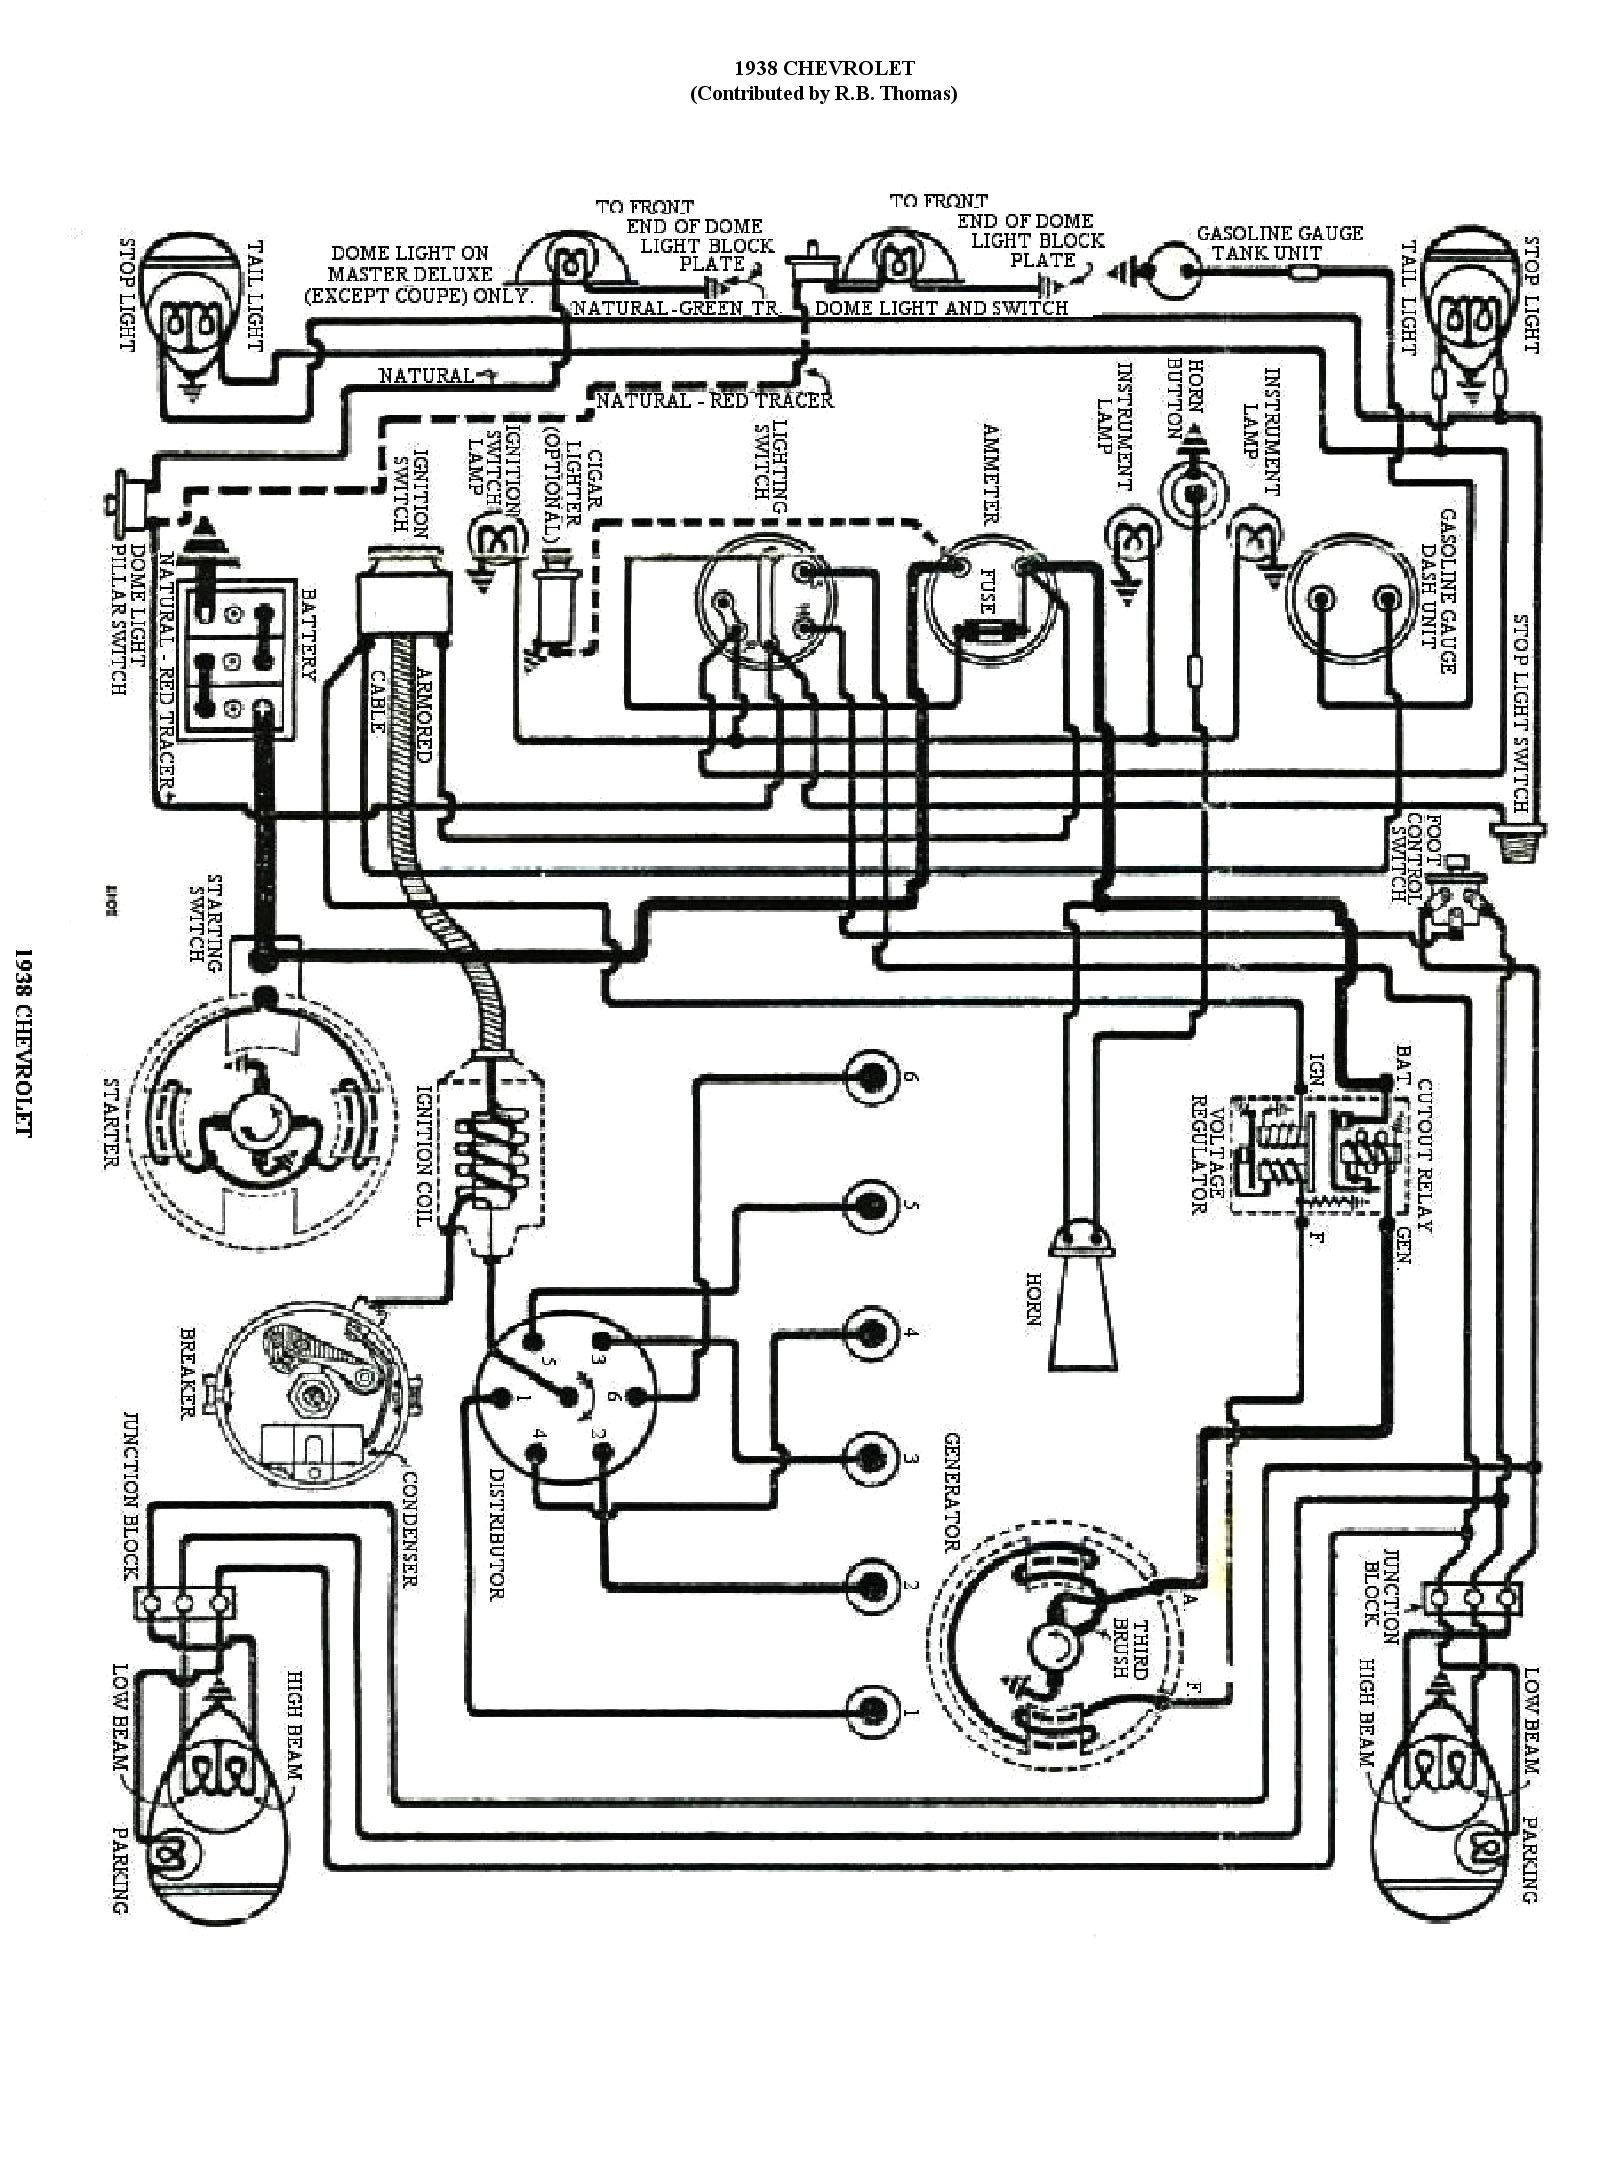 38wiring chevy wiring diagrams Ford F-150 Wire Schematics at gsmportal.co